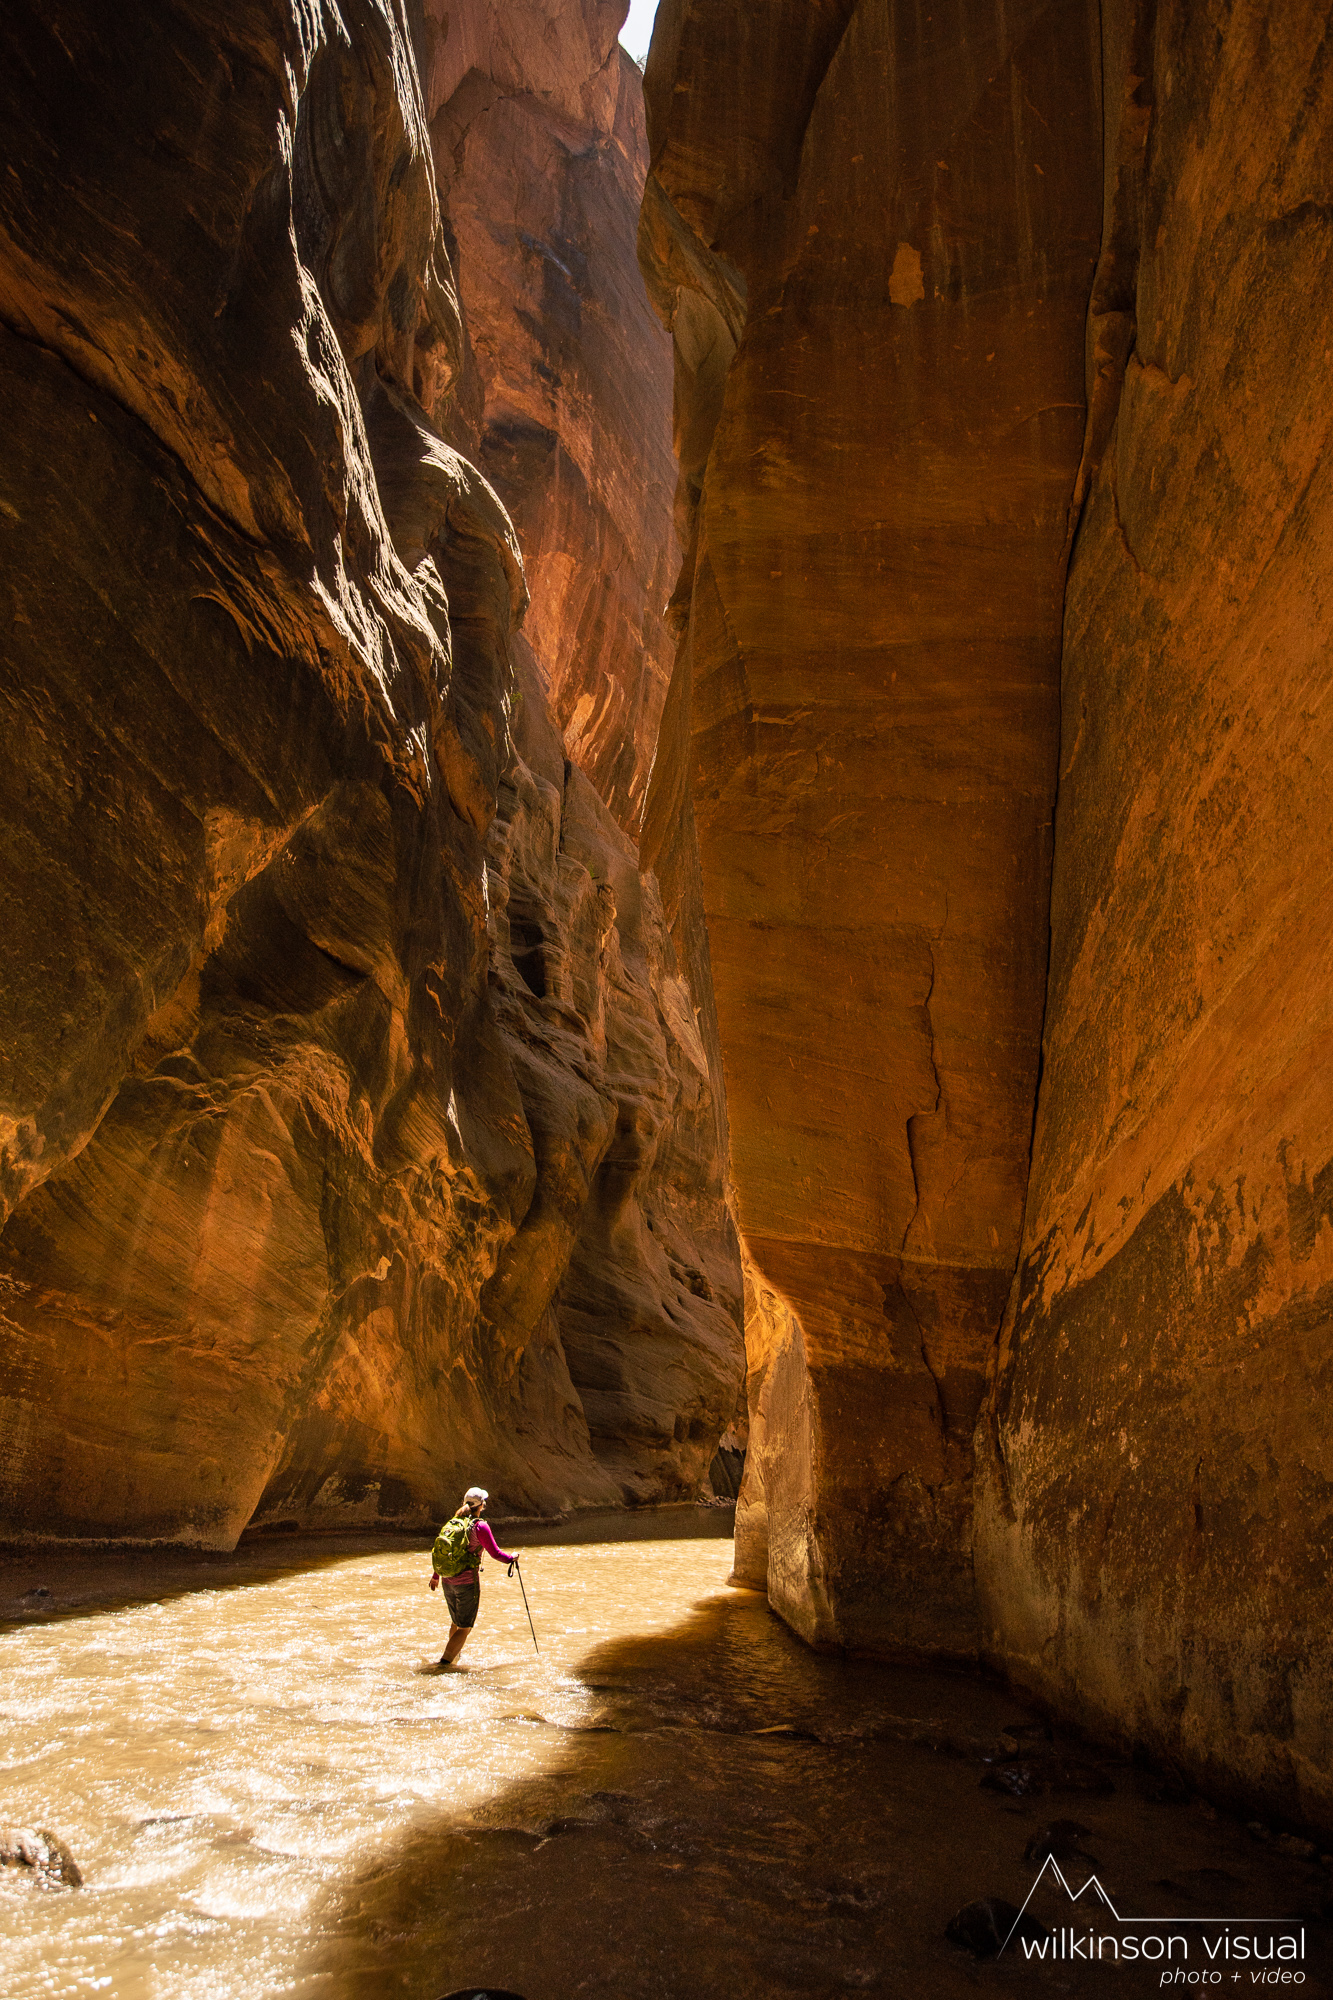 Jen Meunier hikes through the narrows trail in Zion National Park.